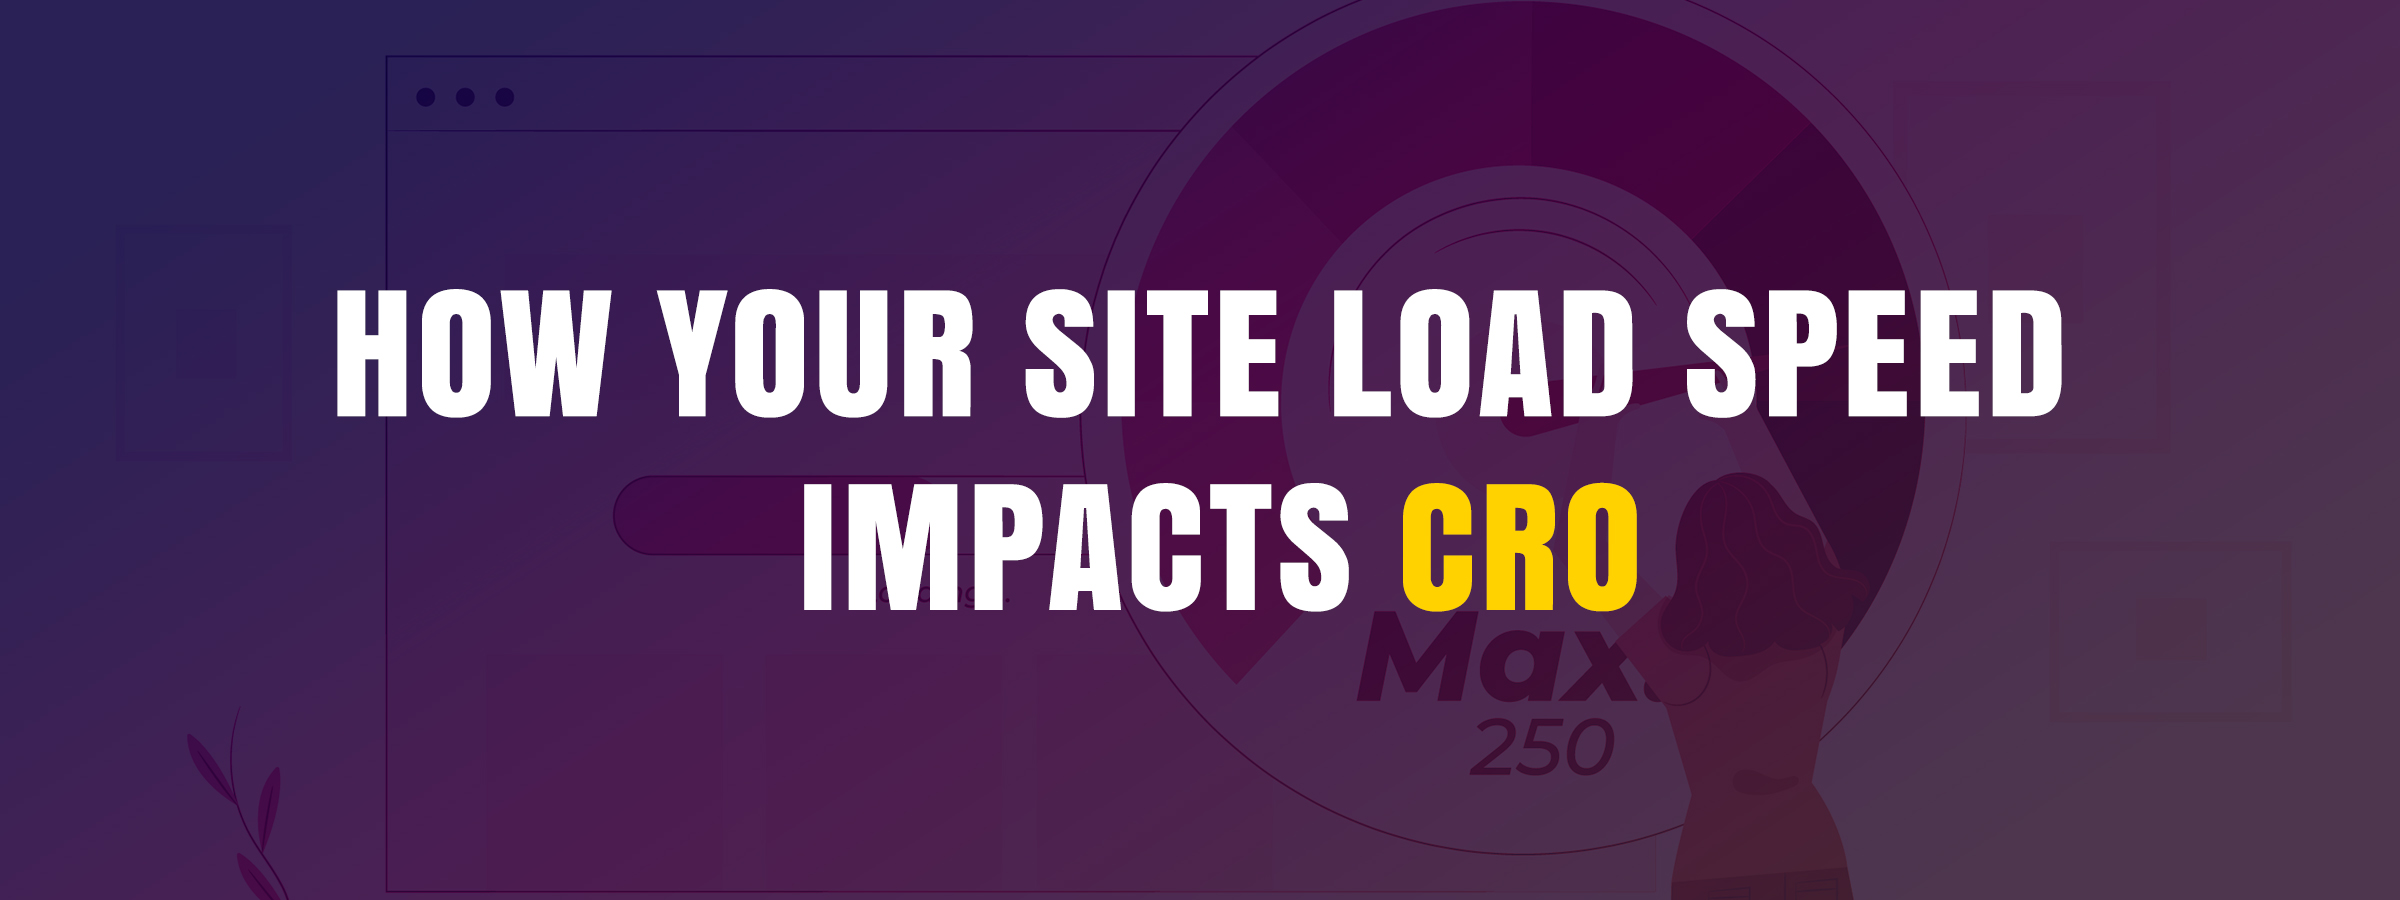 How your site load speed impacts CRO